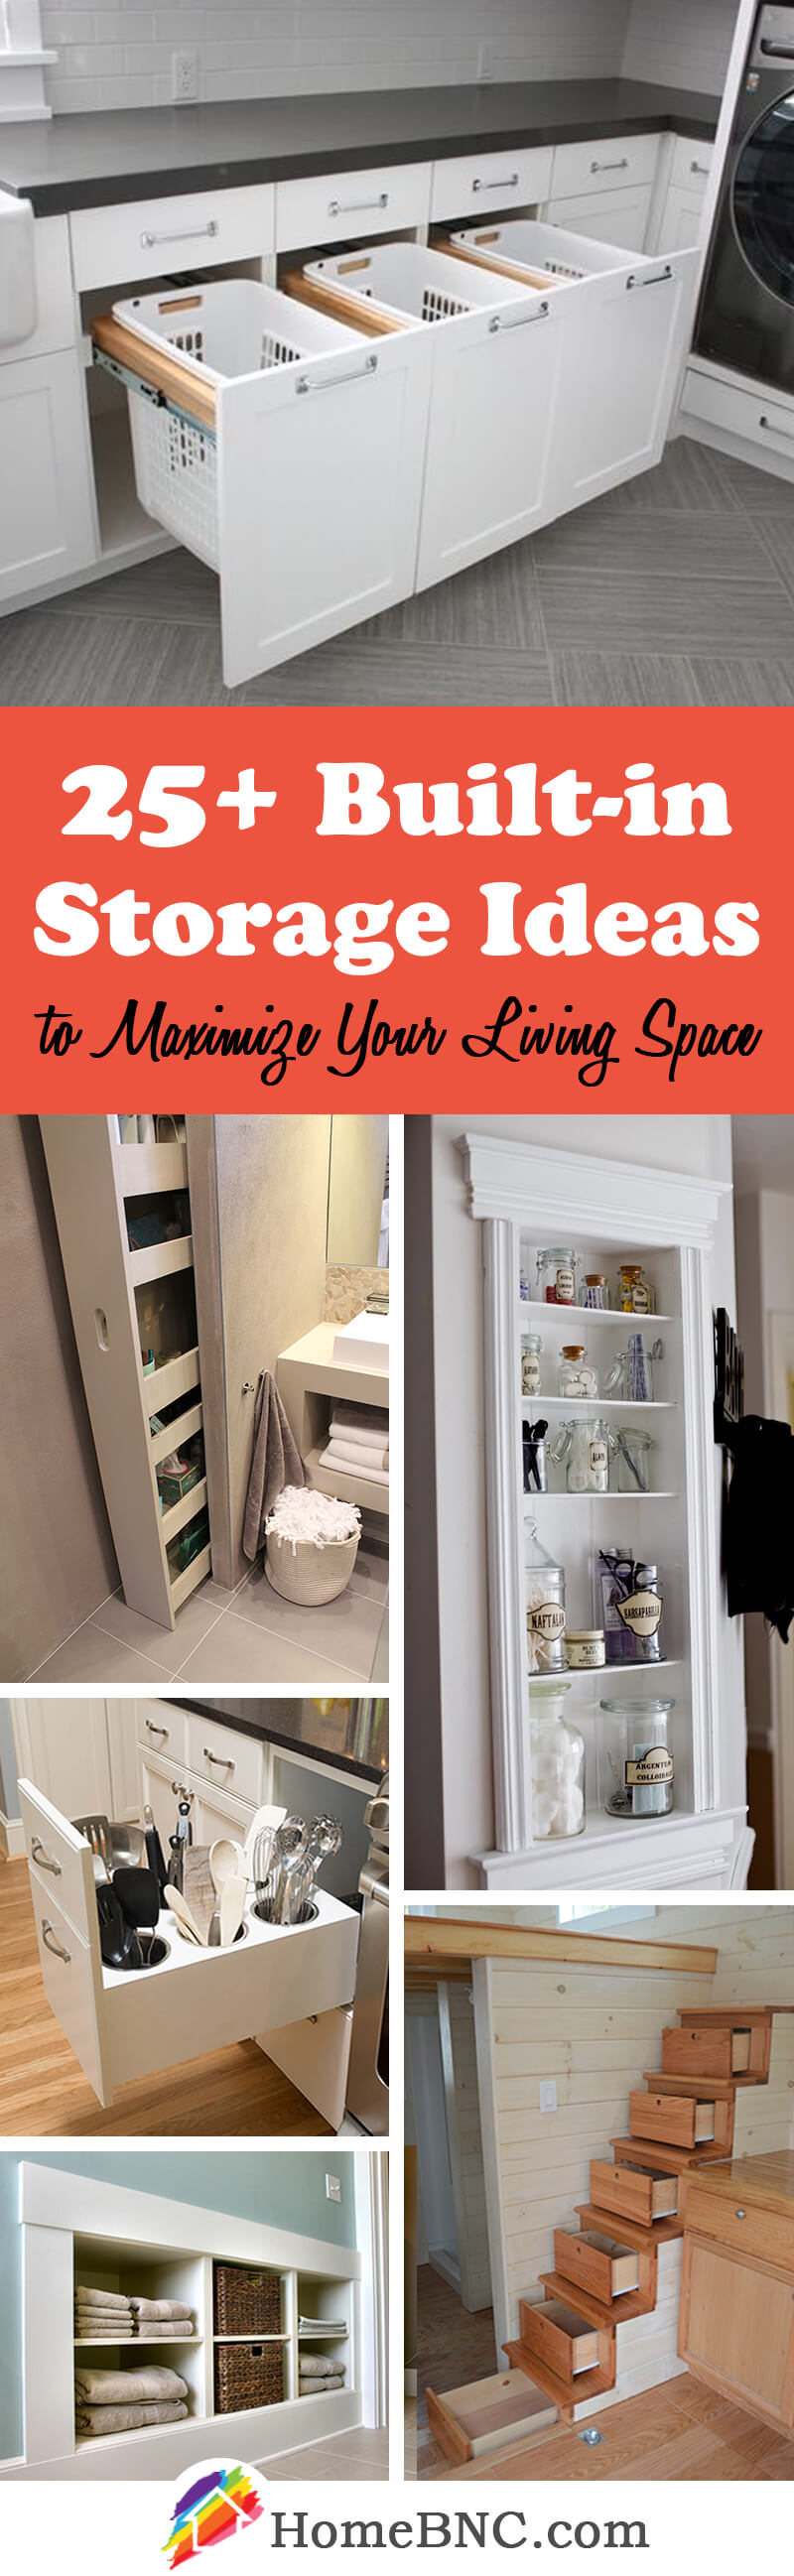 Built-in Storage Decor Ideas